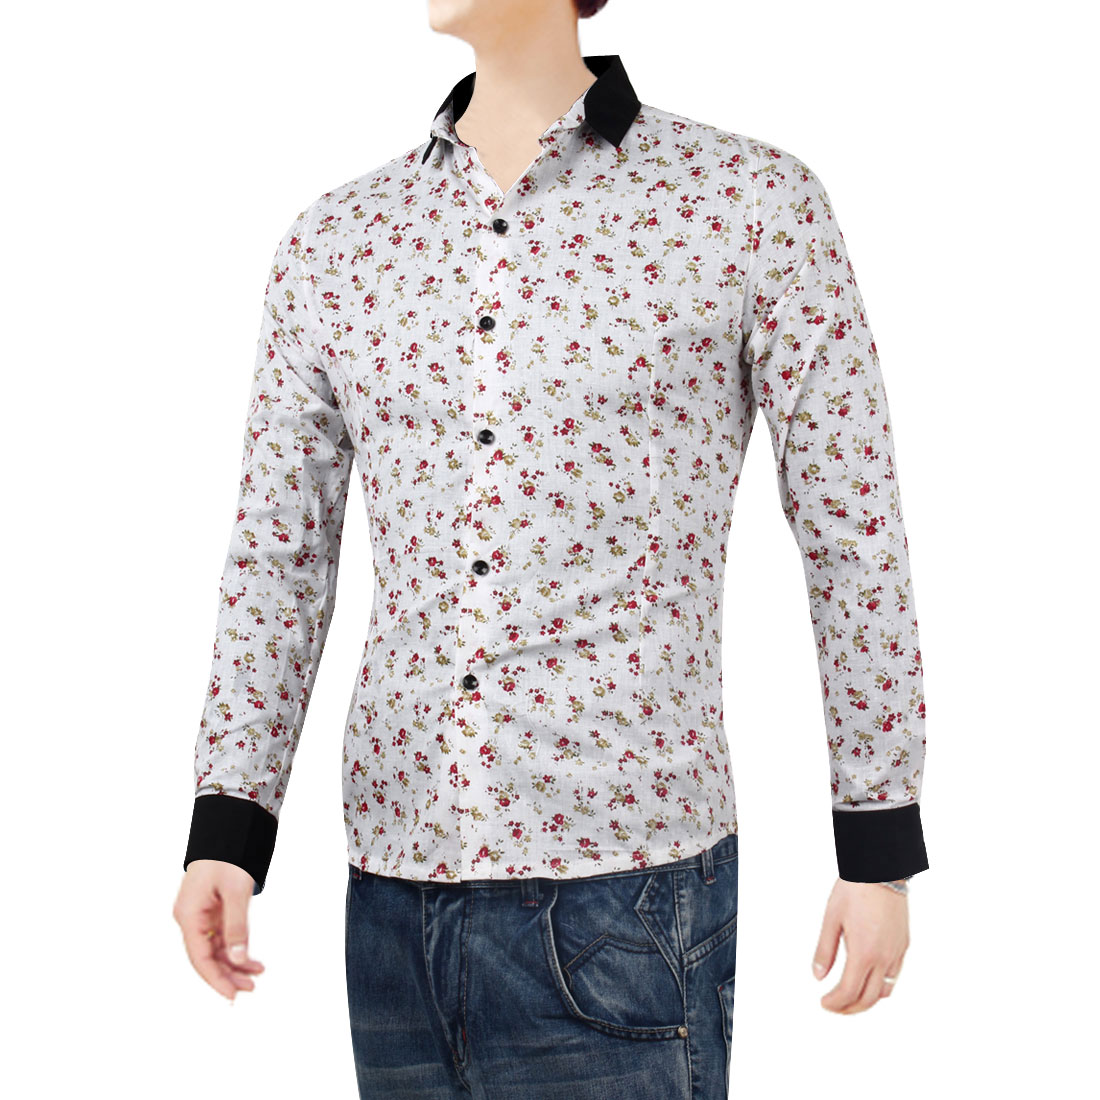 Mens White Contrast Color Long Sleeves Casual Autumn Shirt S